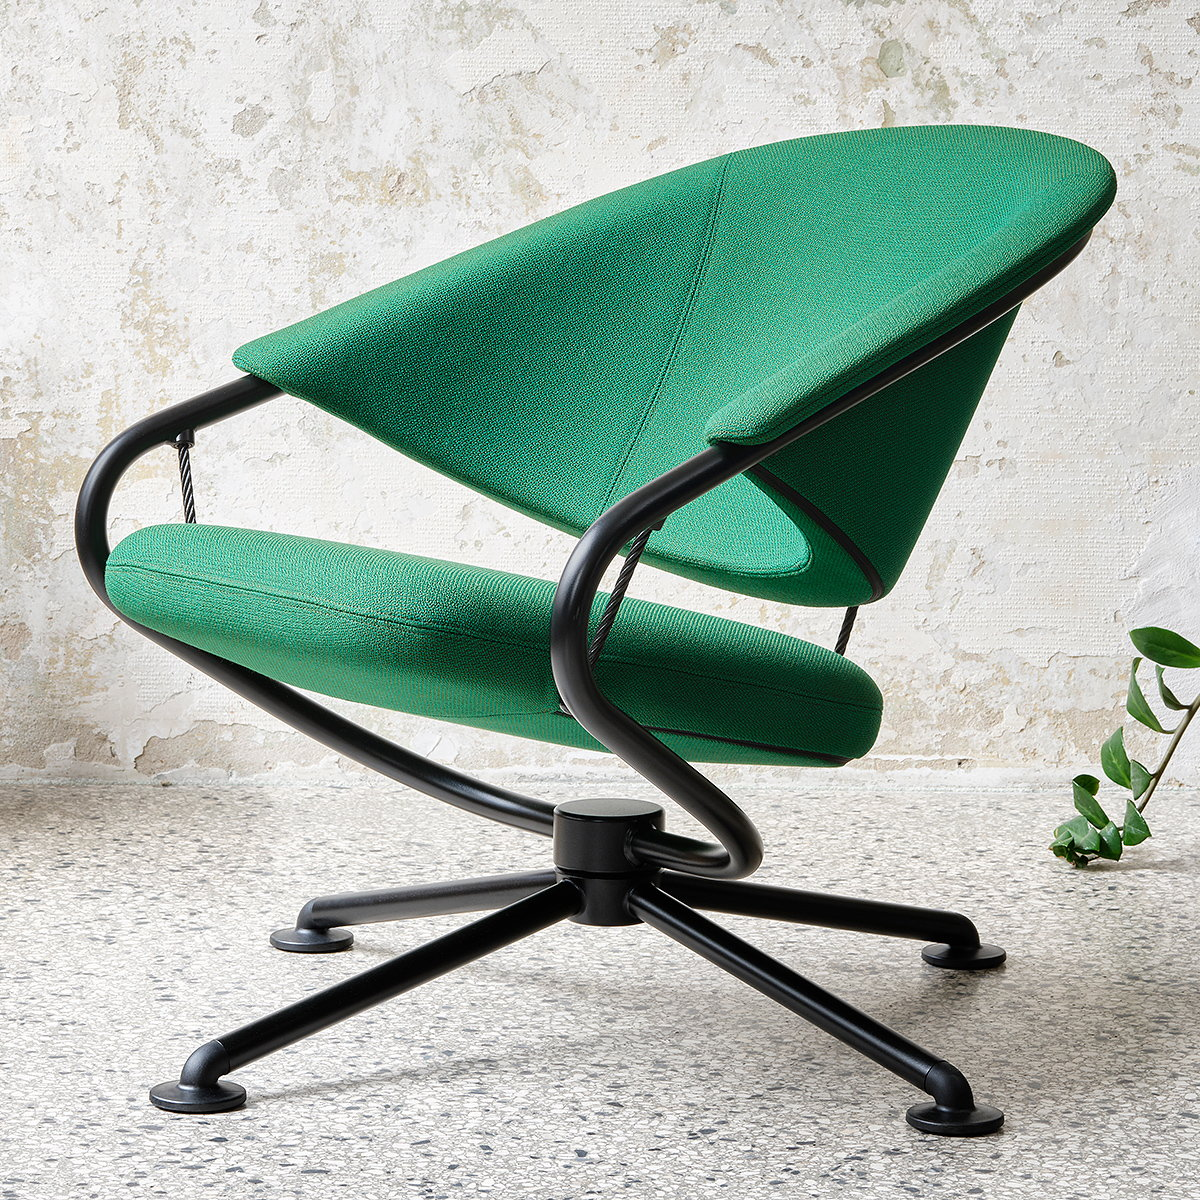 Citizen Chair by Konstantin Grcic for Vitra